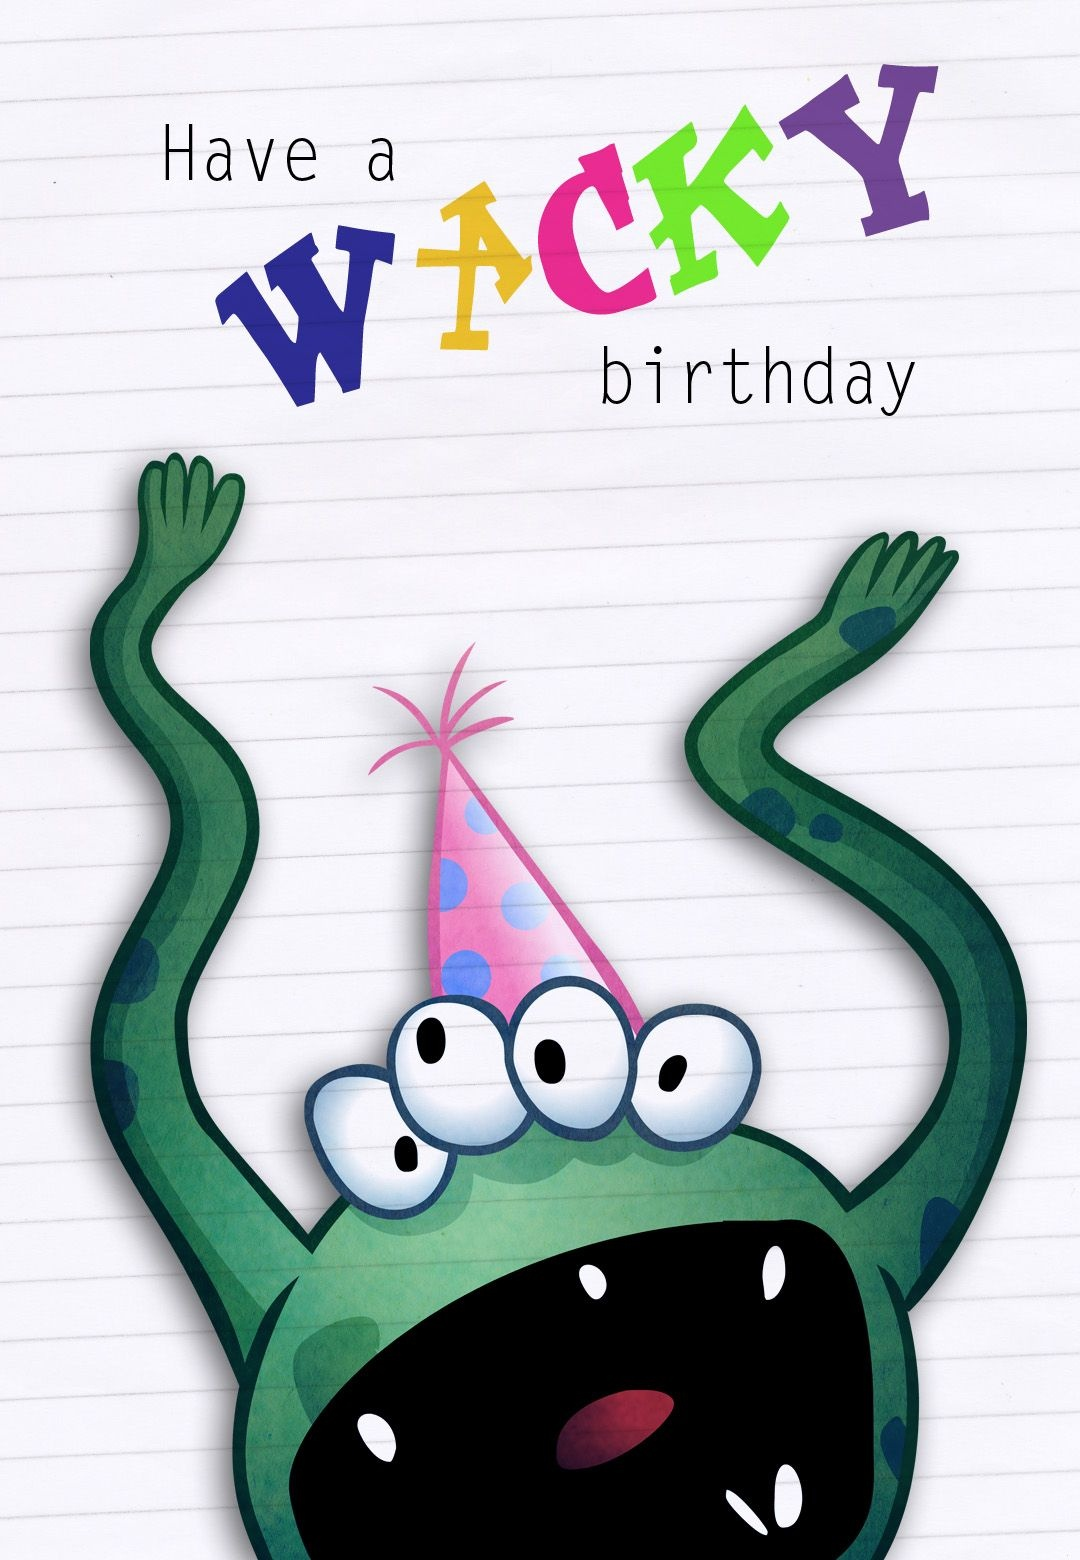 Free Printable Greeting Cards - The Kids Love To Make Cards With - Free Printable Birthday Cards For Boys